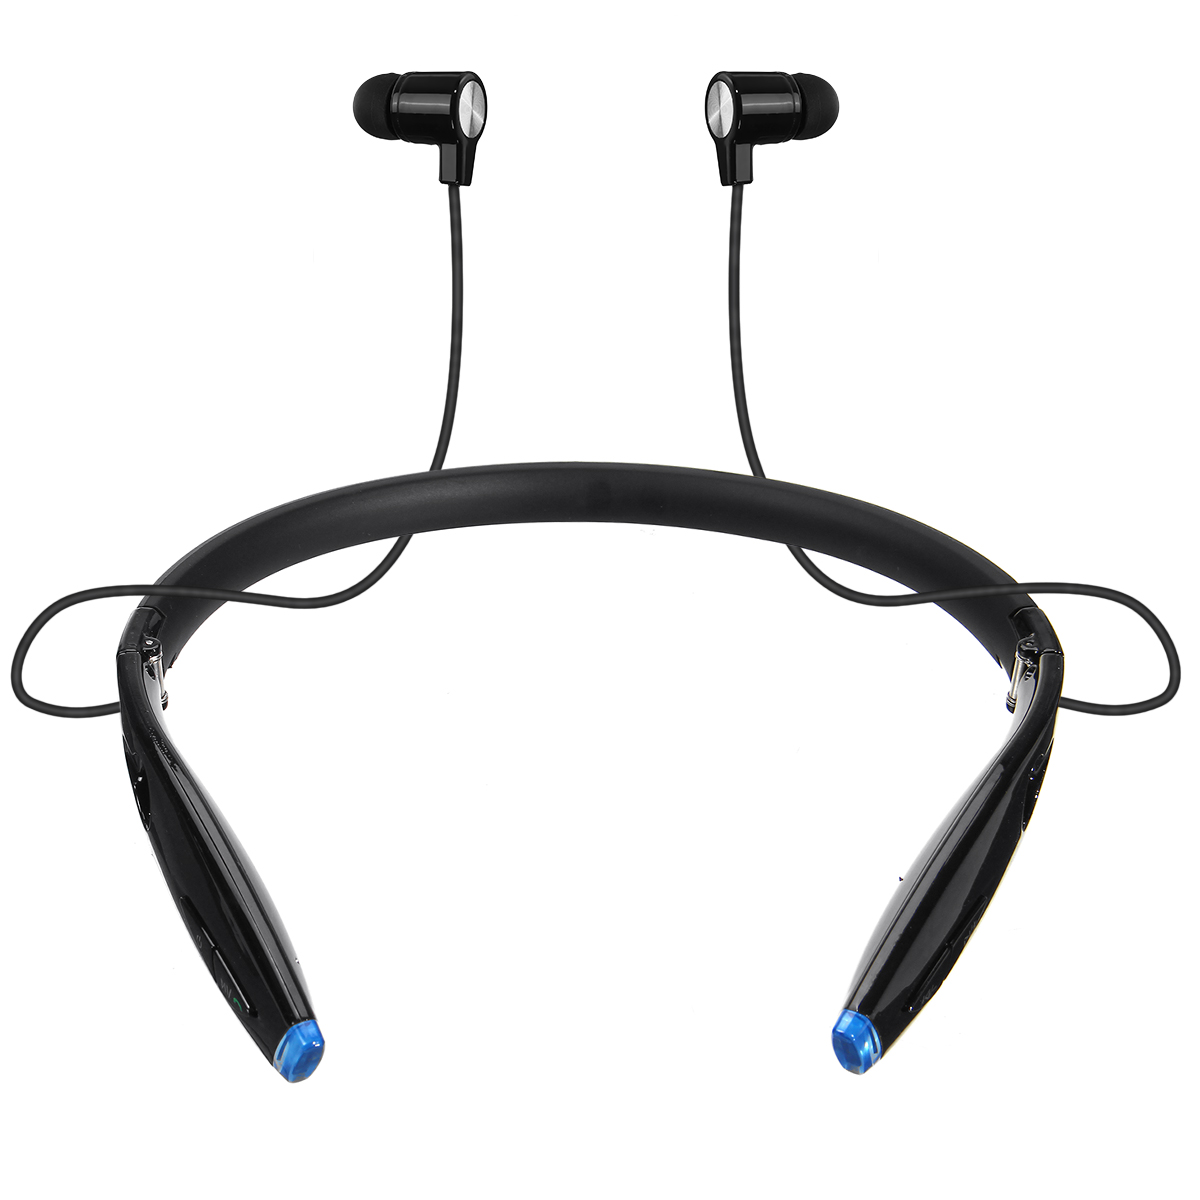 Zealot H1 Foldable bluetooth Stereo Neckband Headphone CVC6.0 Noise Canceling IPX7 Waterproof Earphone with Mic